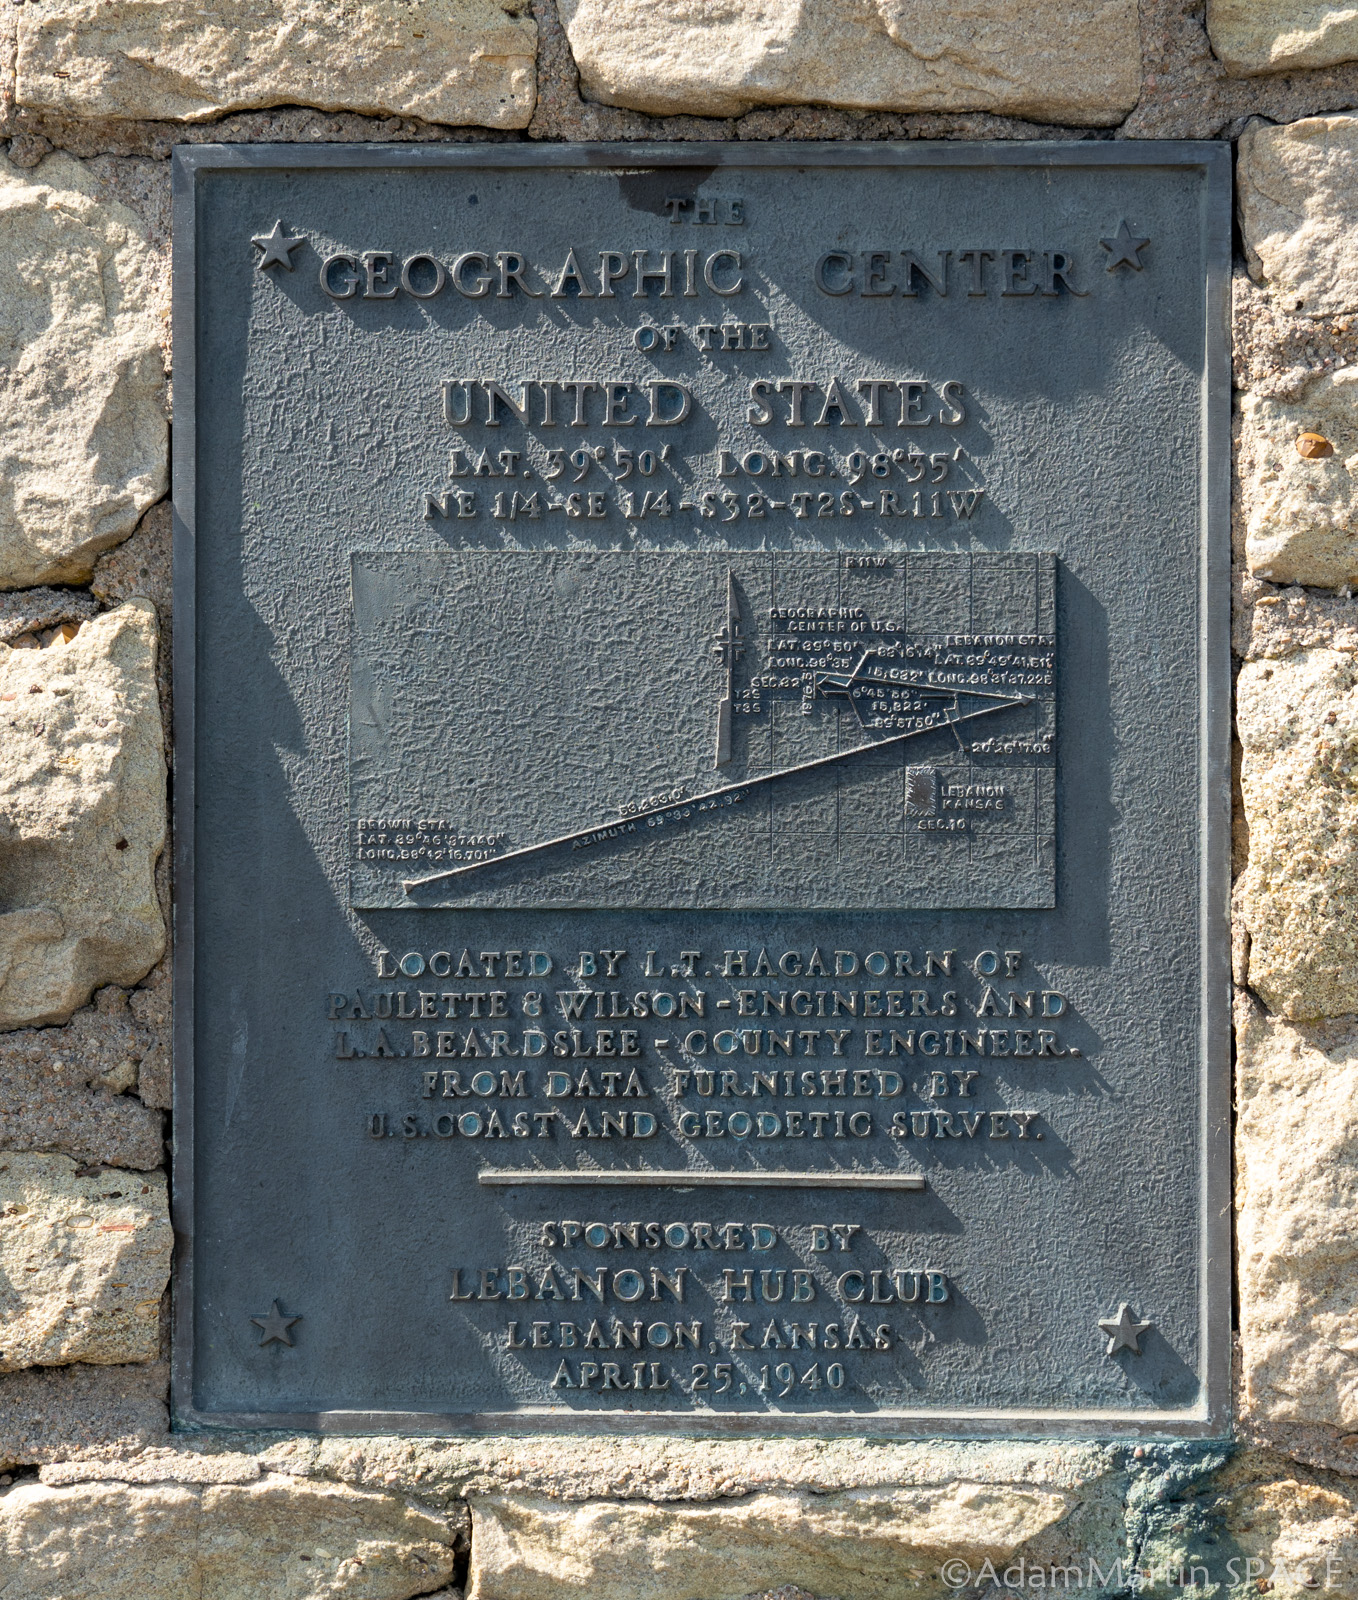 Geographic Center of the Contiguous United States - Plaque mounted on the stone marker